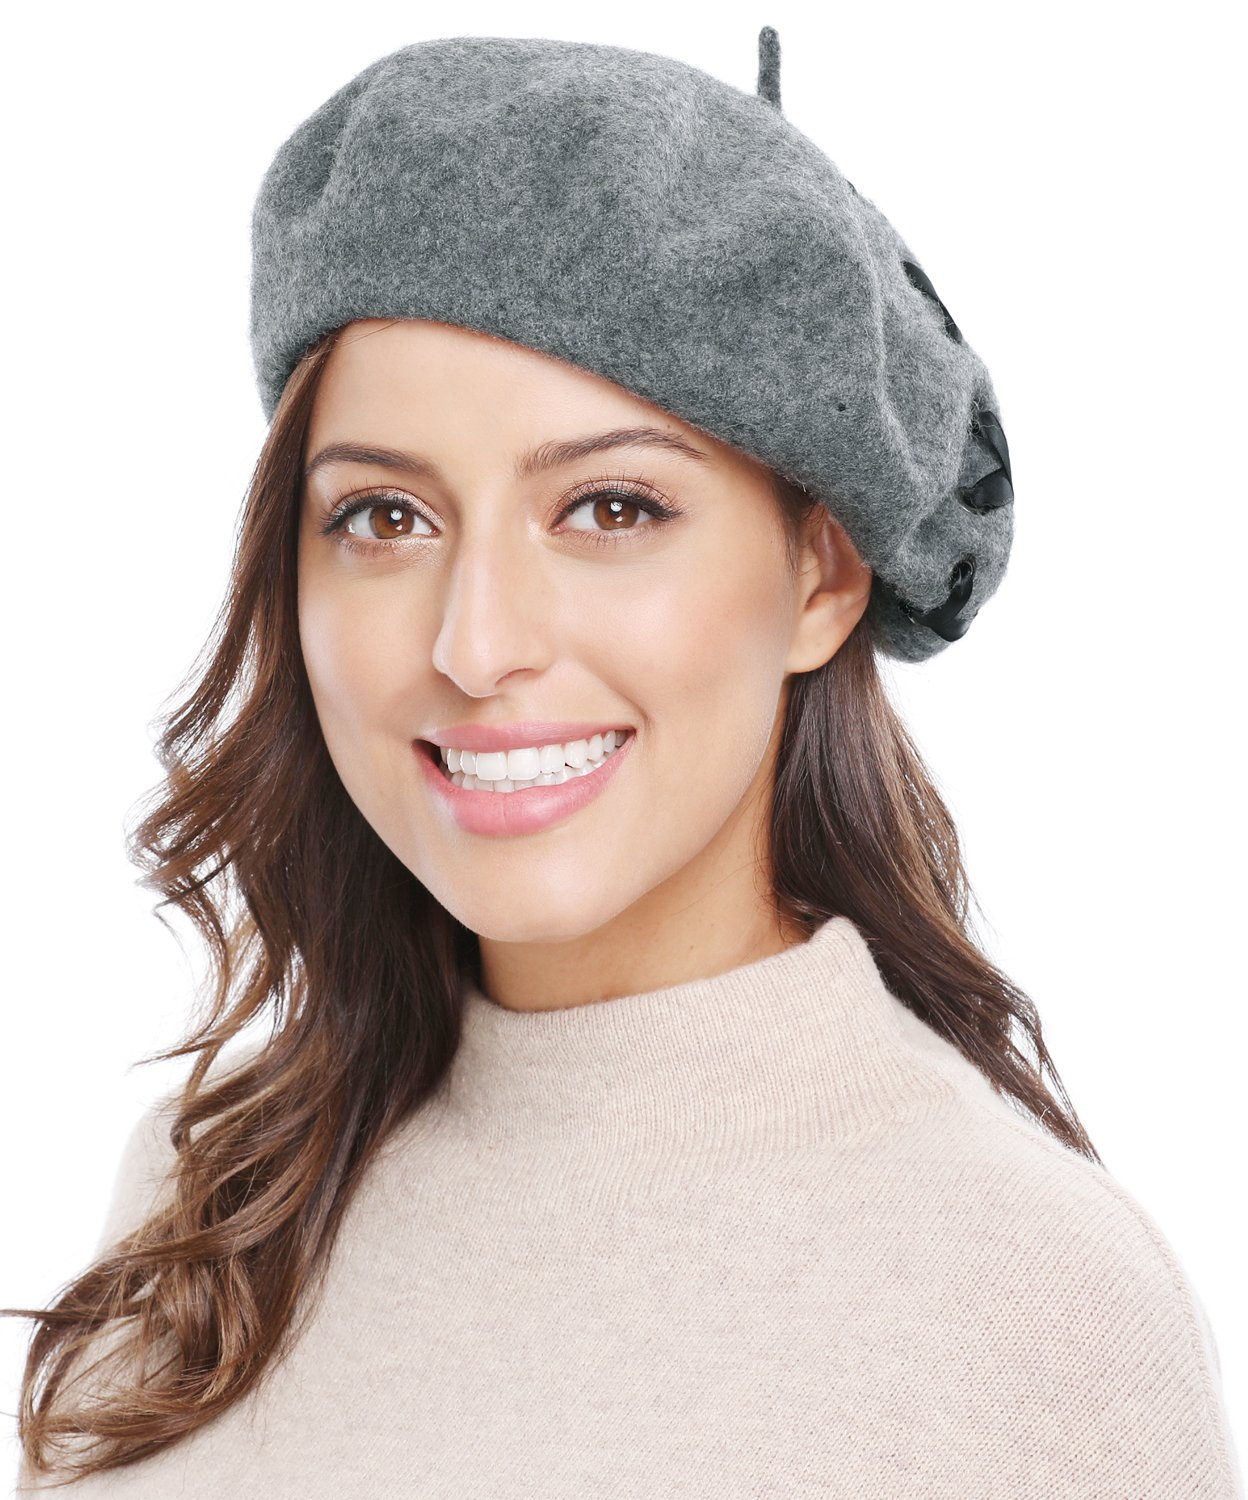 Bellady Women's Vintage Classic French Solid Wool Beret Hat Beanie Cap, Grey_2